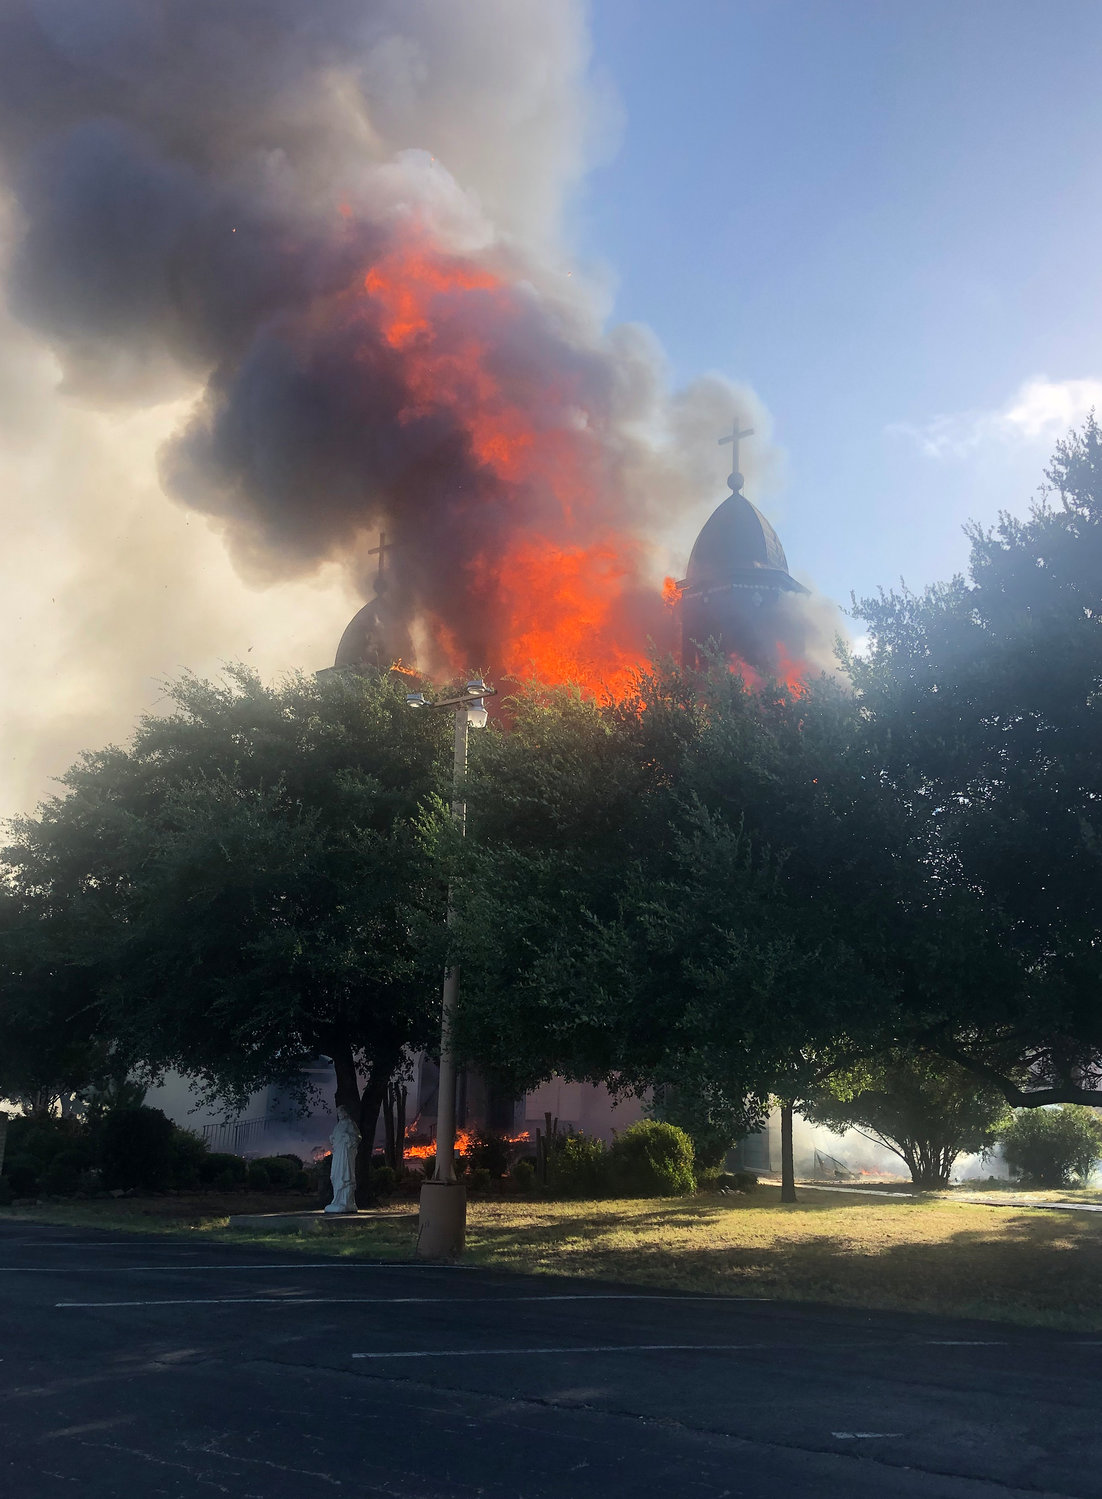 Flames and smoke billow out of the Church of the Visitation in Westphalia, Texas, July, 29, 2019. The nearly 125-year old wooden church with bell towers on each side, burned to the ground that morning. Since 1883 the parish has served the Catholic community of southwestern Falls County, many of whom are descendents of immigrants from the northwest German region of Westphalia.